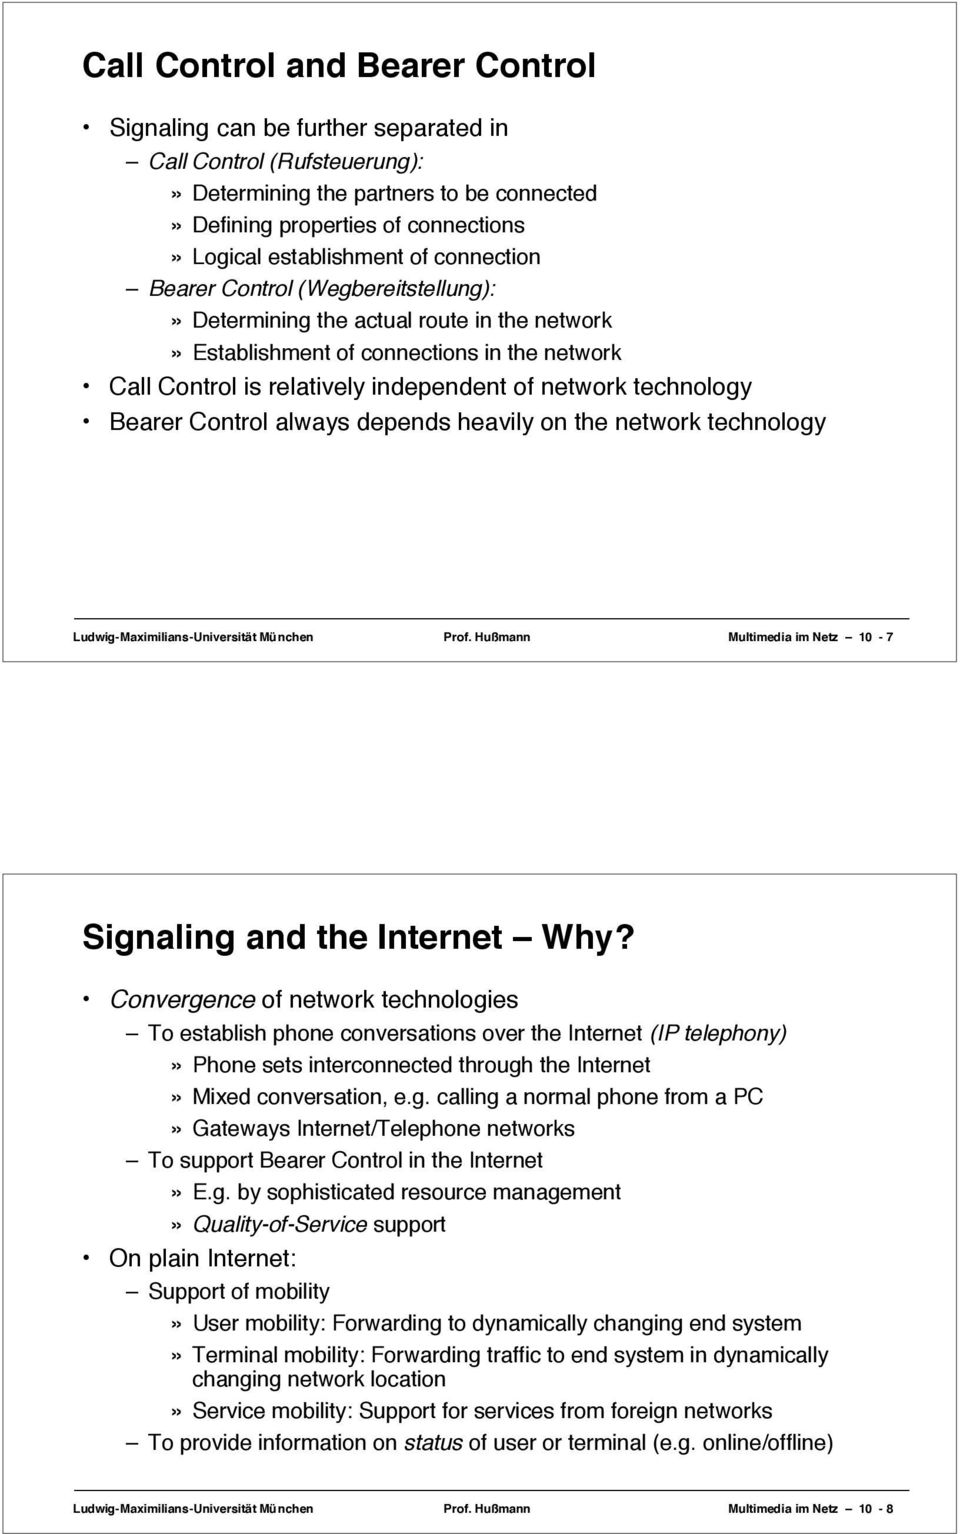 technology Bearer Control always depends heavily on the network technology Ludwig-Maximilians-Universität München Prof. Hußmann Multimedia im Netz 10-7 Signaling and the Internet Why?